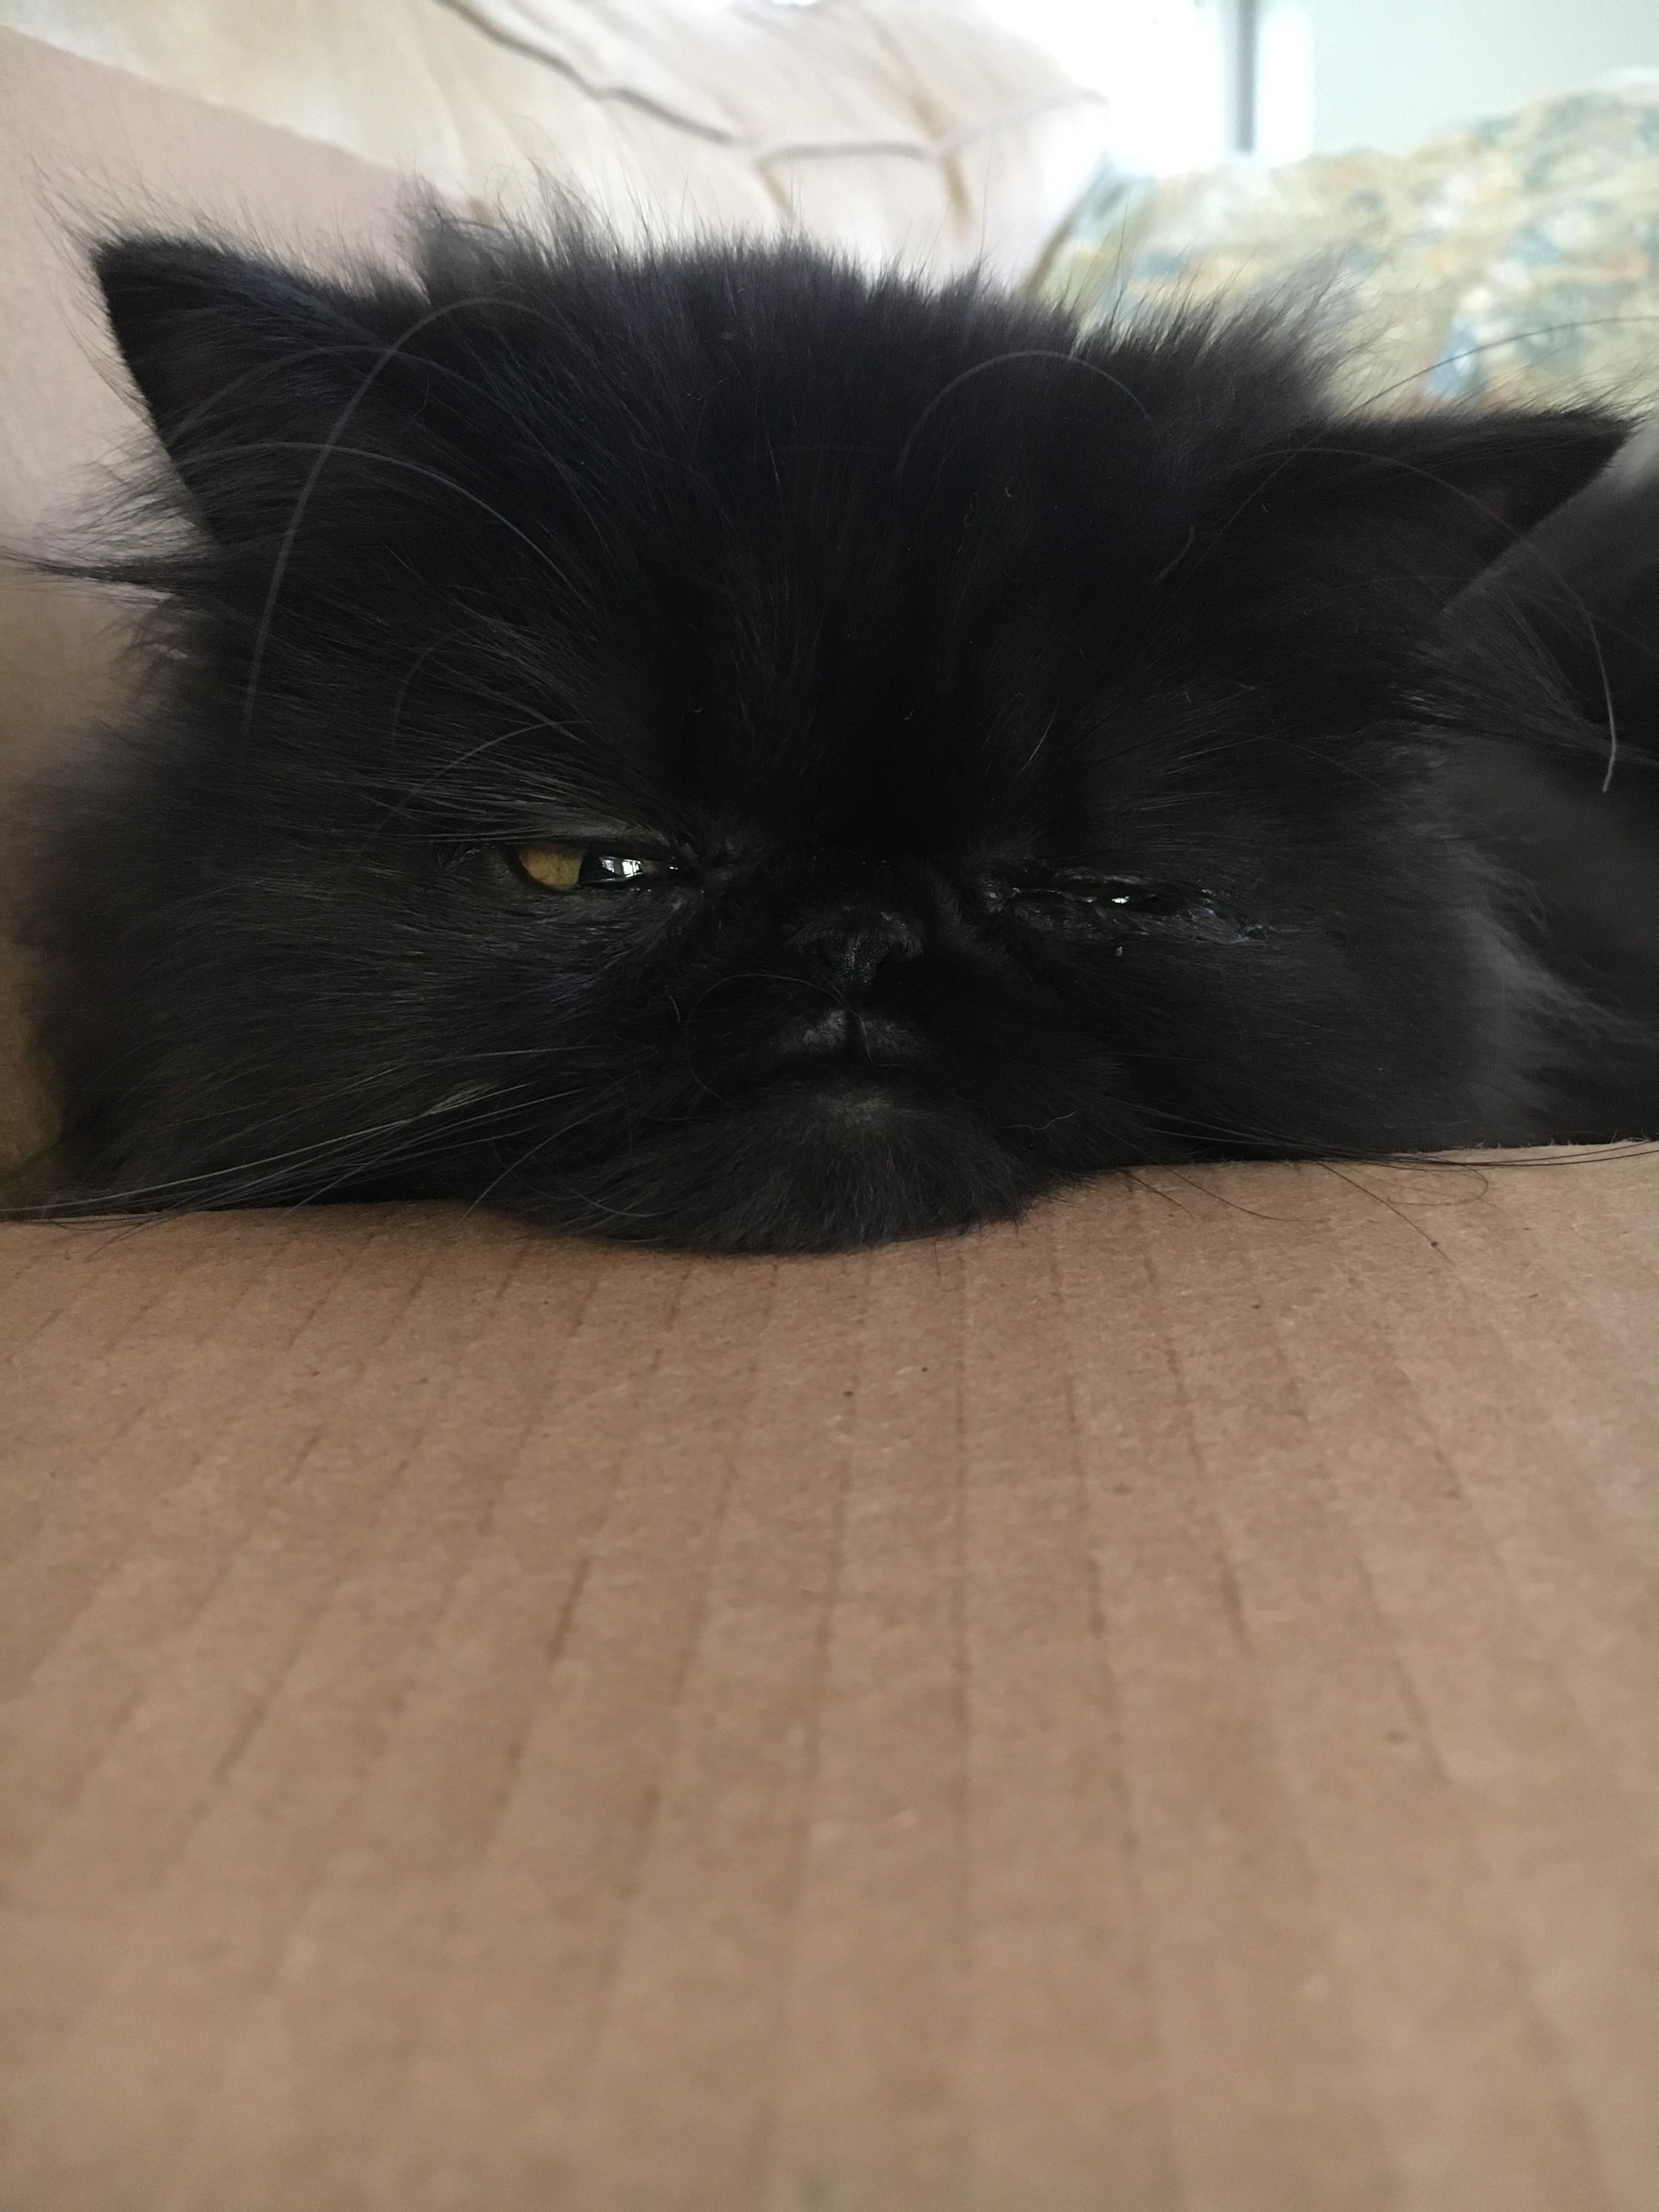 Some cats get happy in boxes. Mine gets sad. http://ift.tt/2yfecyE